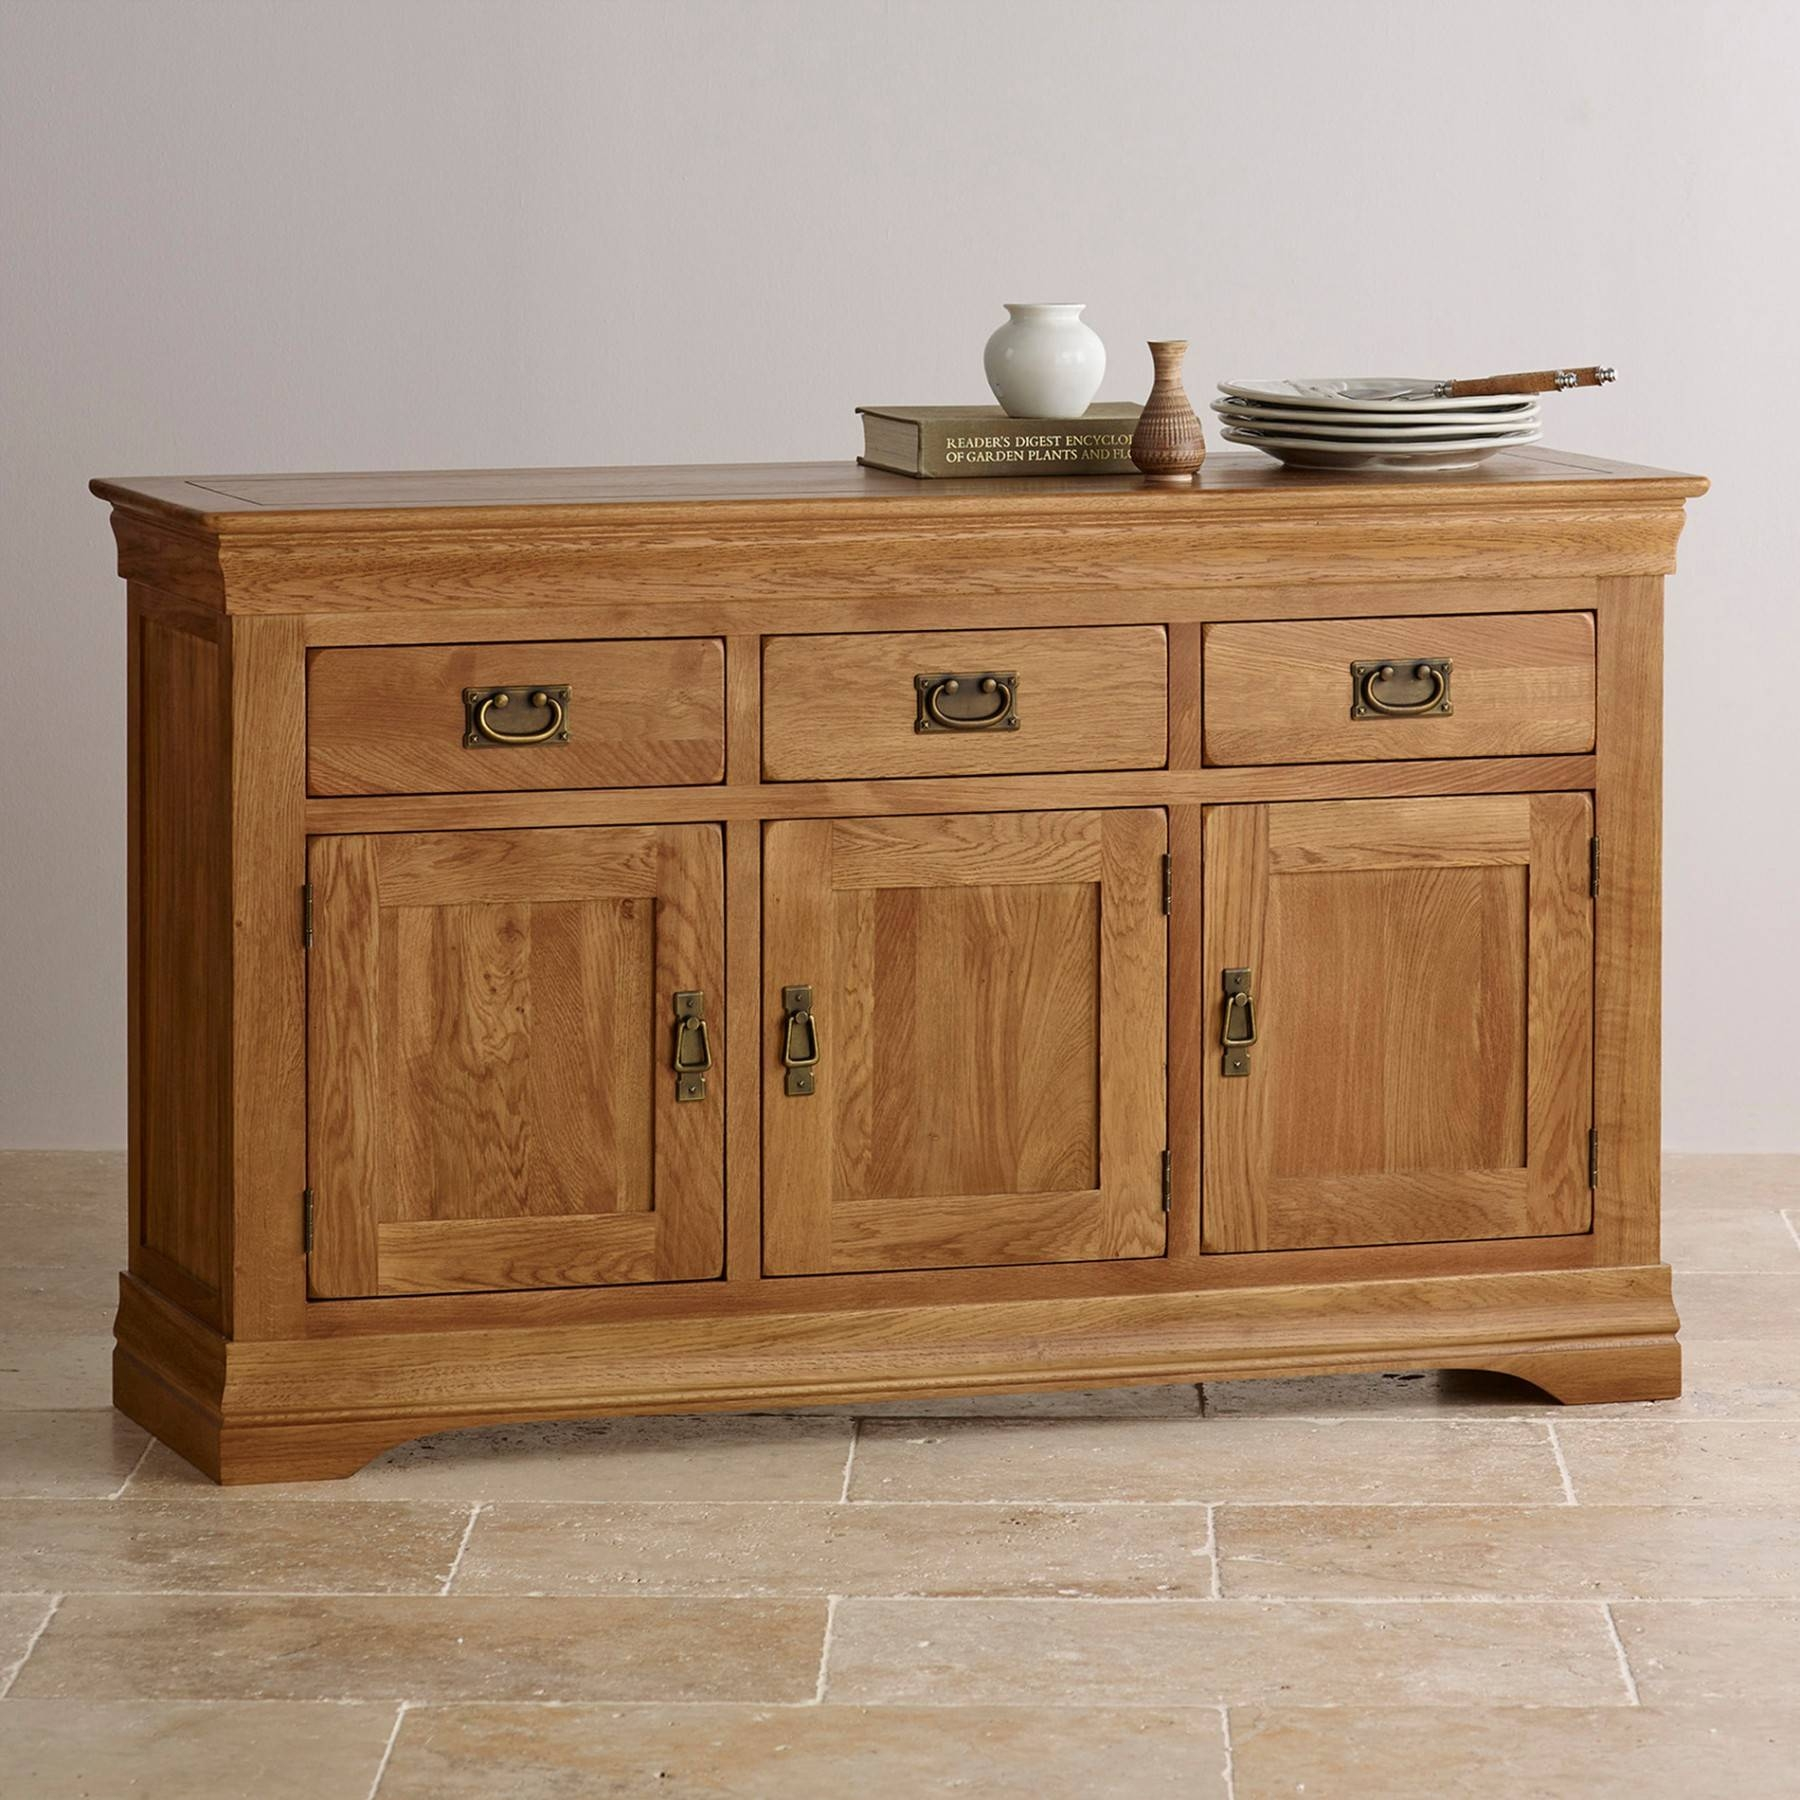 French Farmhouse Rustic Solid Oak Large Sideboard | Sideboards pertaining to Rustic Oak Large Sideboards (Image 9 of 15)